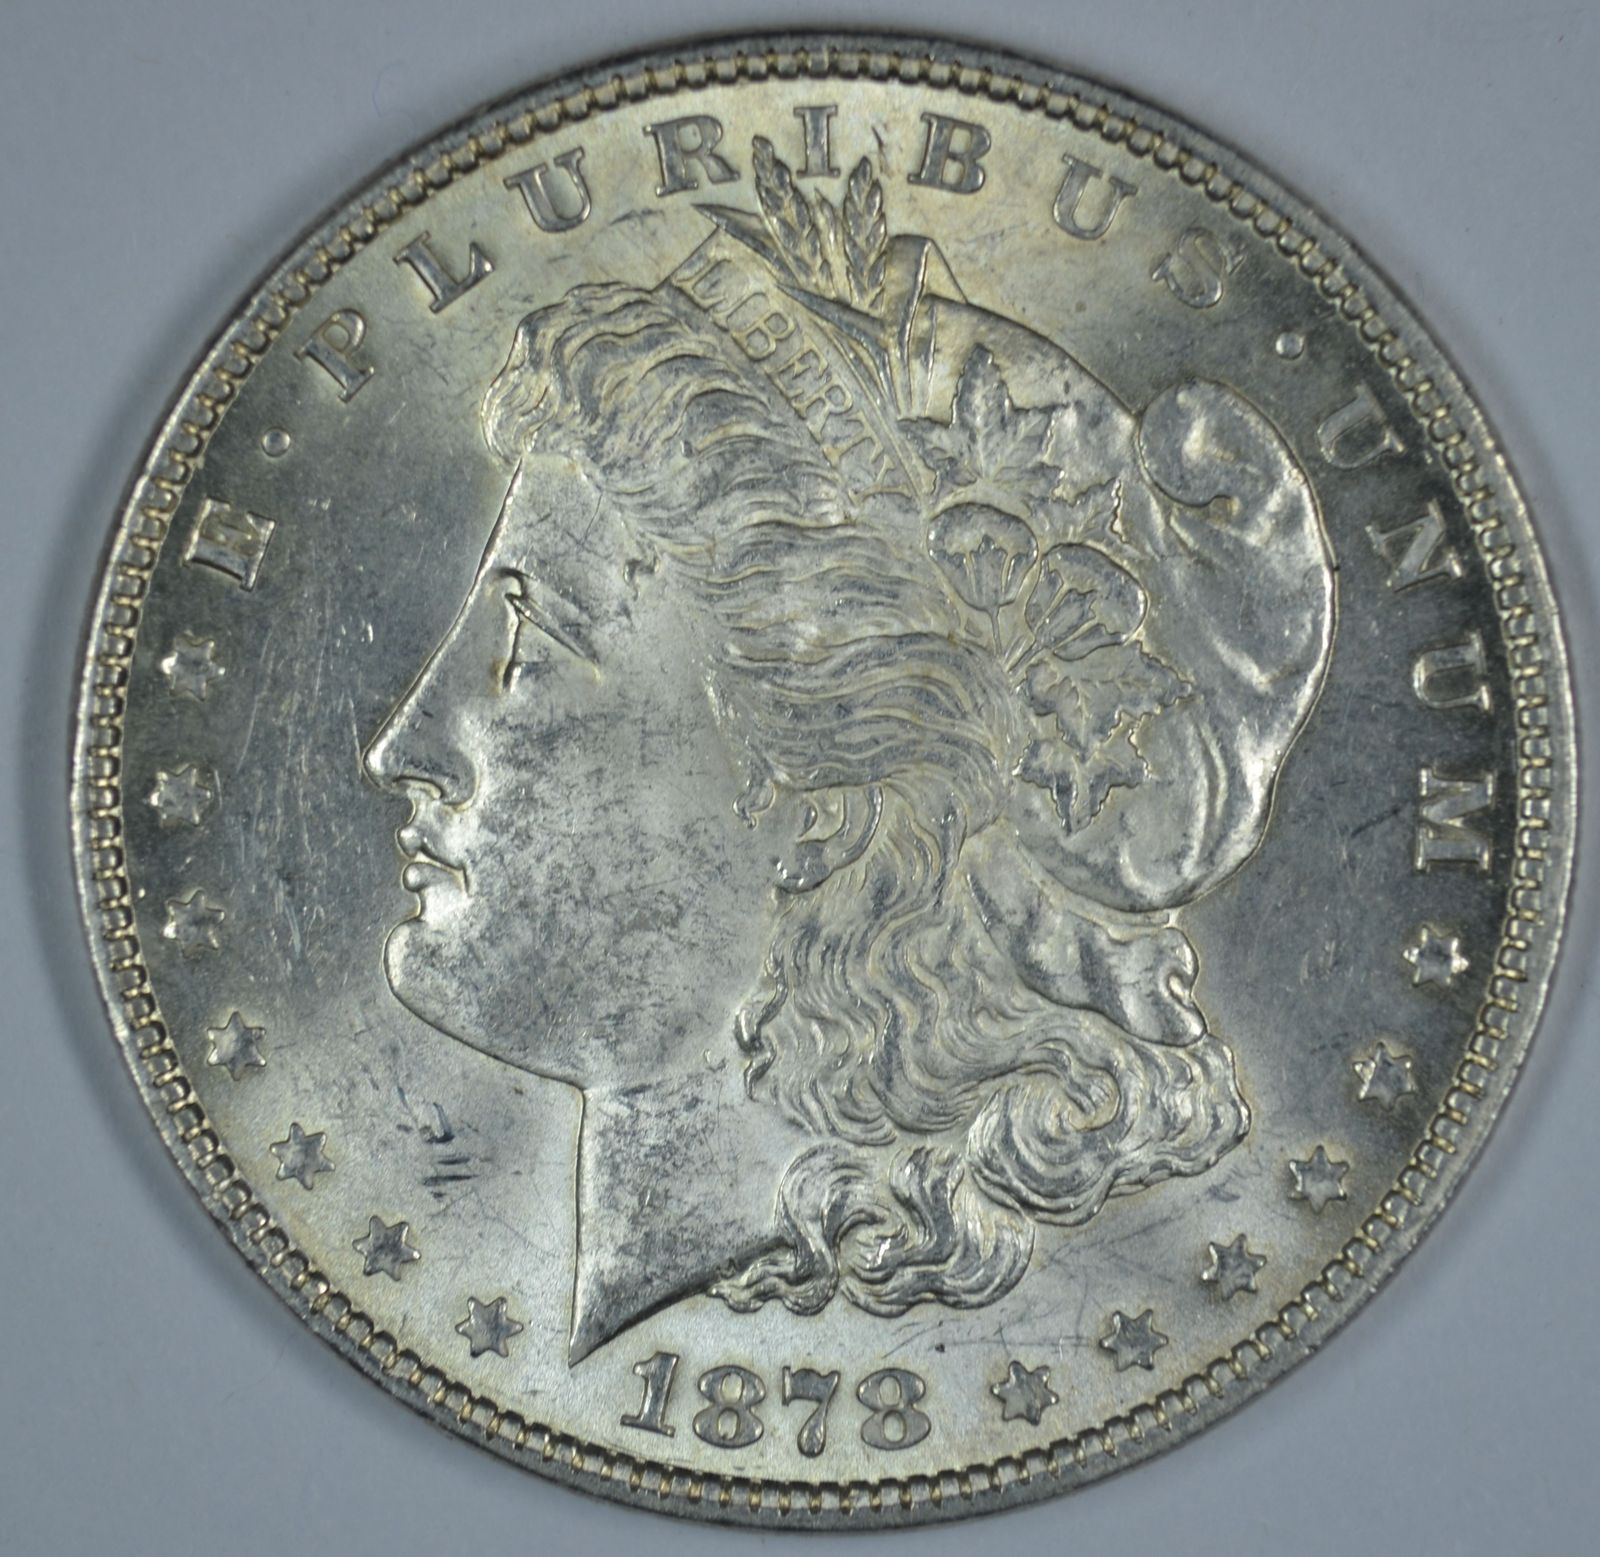 Primary image for 1878 P Morgan circulated silver dollar AU details